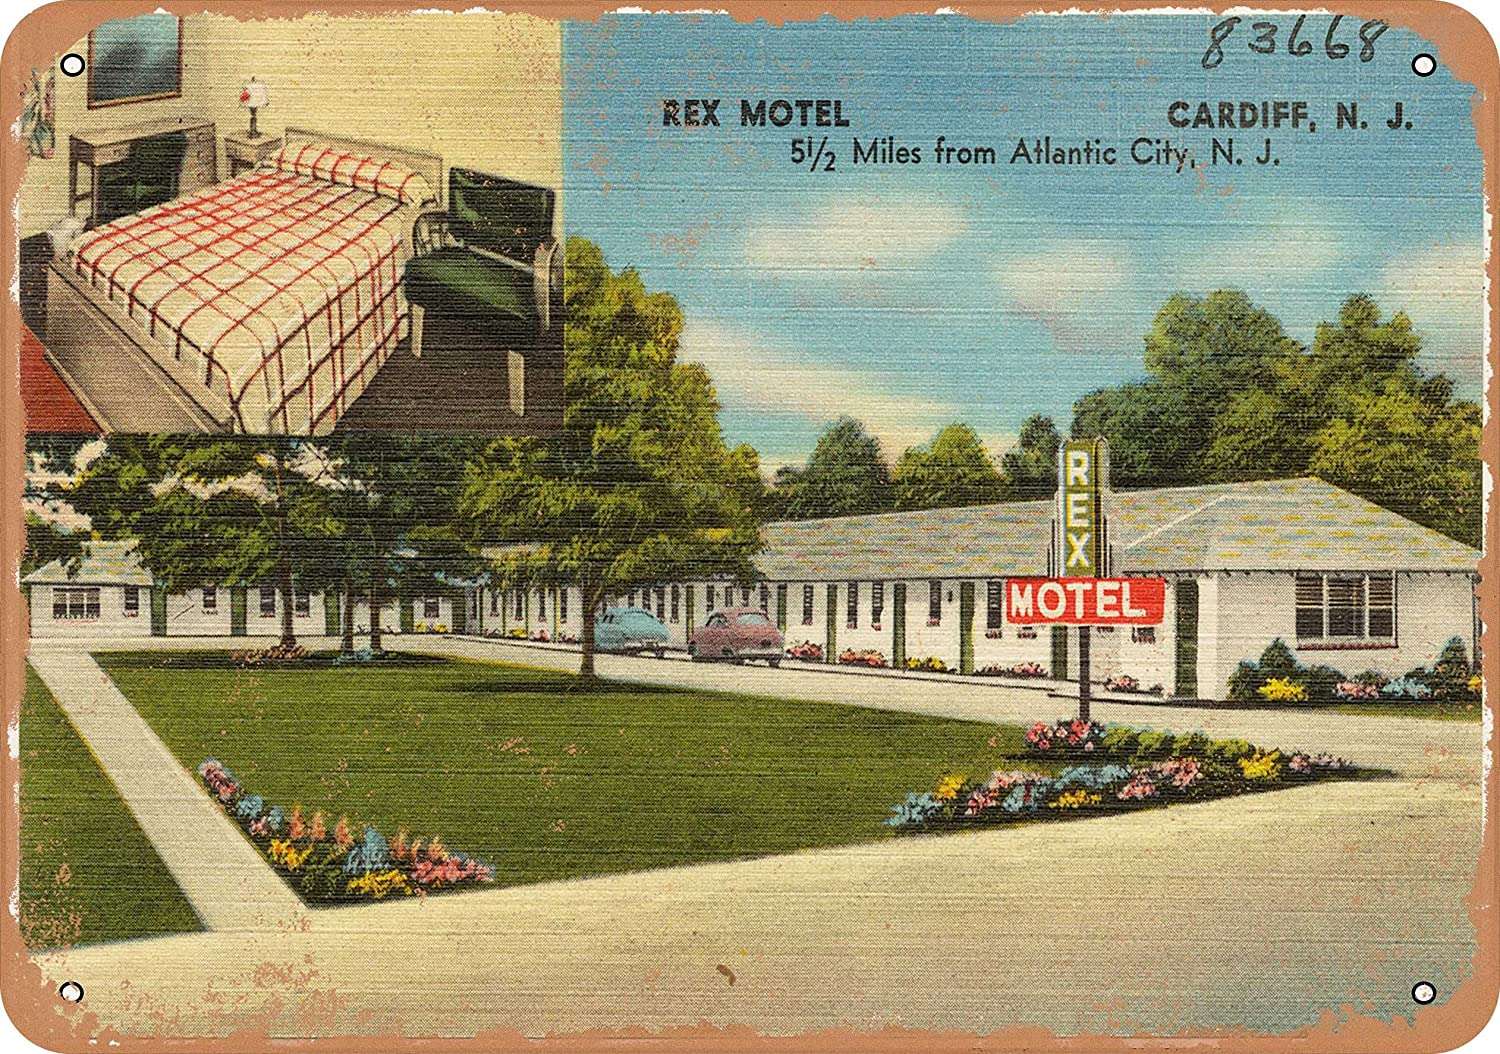 Wall-Color 10 x 14 Metal Sign - New Jersey Postcard - Rex Motel, Cardiff, N.J, 5 1 2 Miles from Atlantic City, N.J. - Vintage Rusty Look